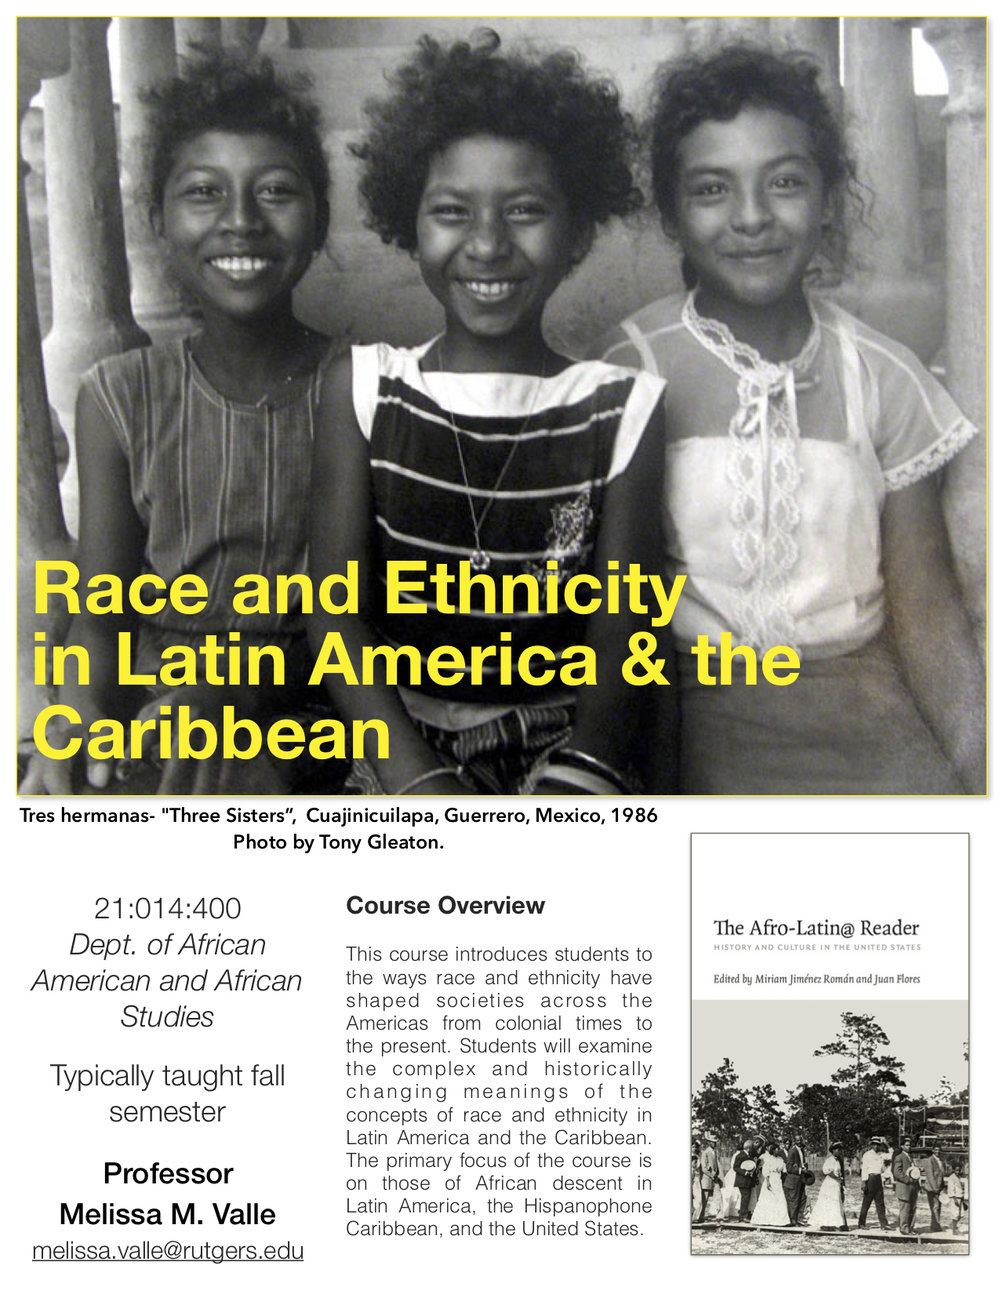 Race and Ethnicity in Latin America Poster.jpg